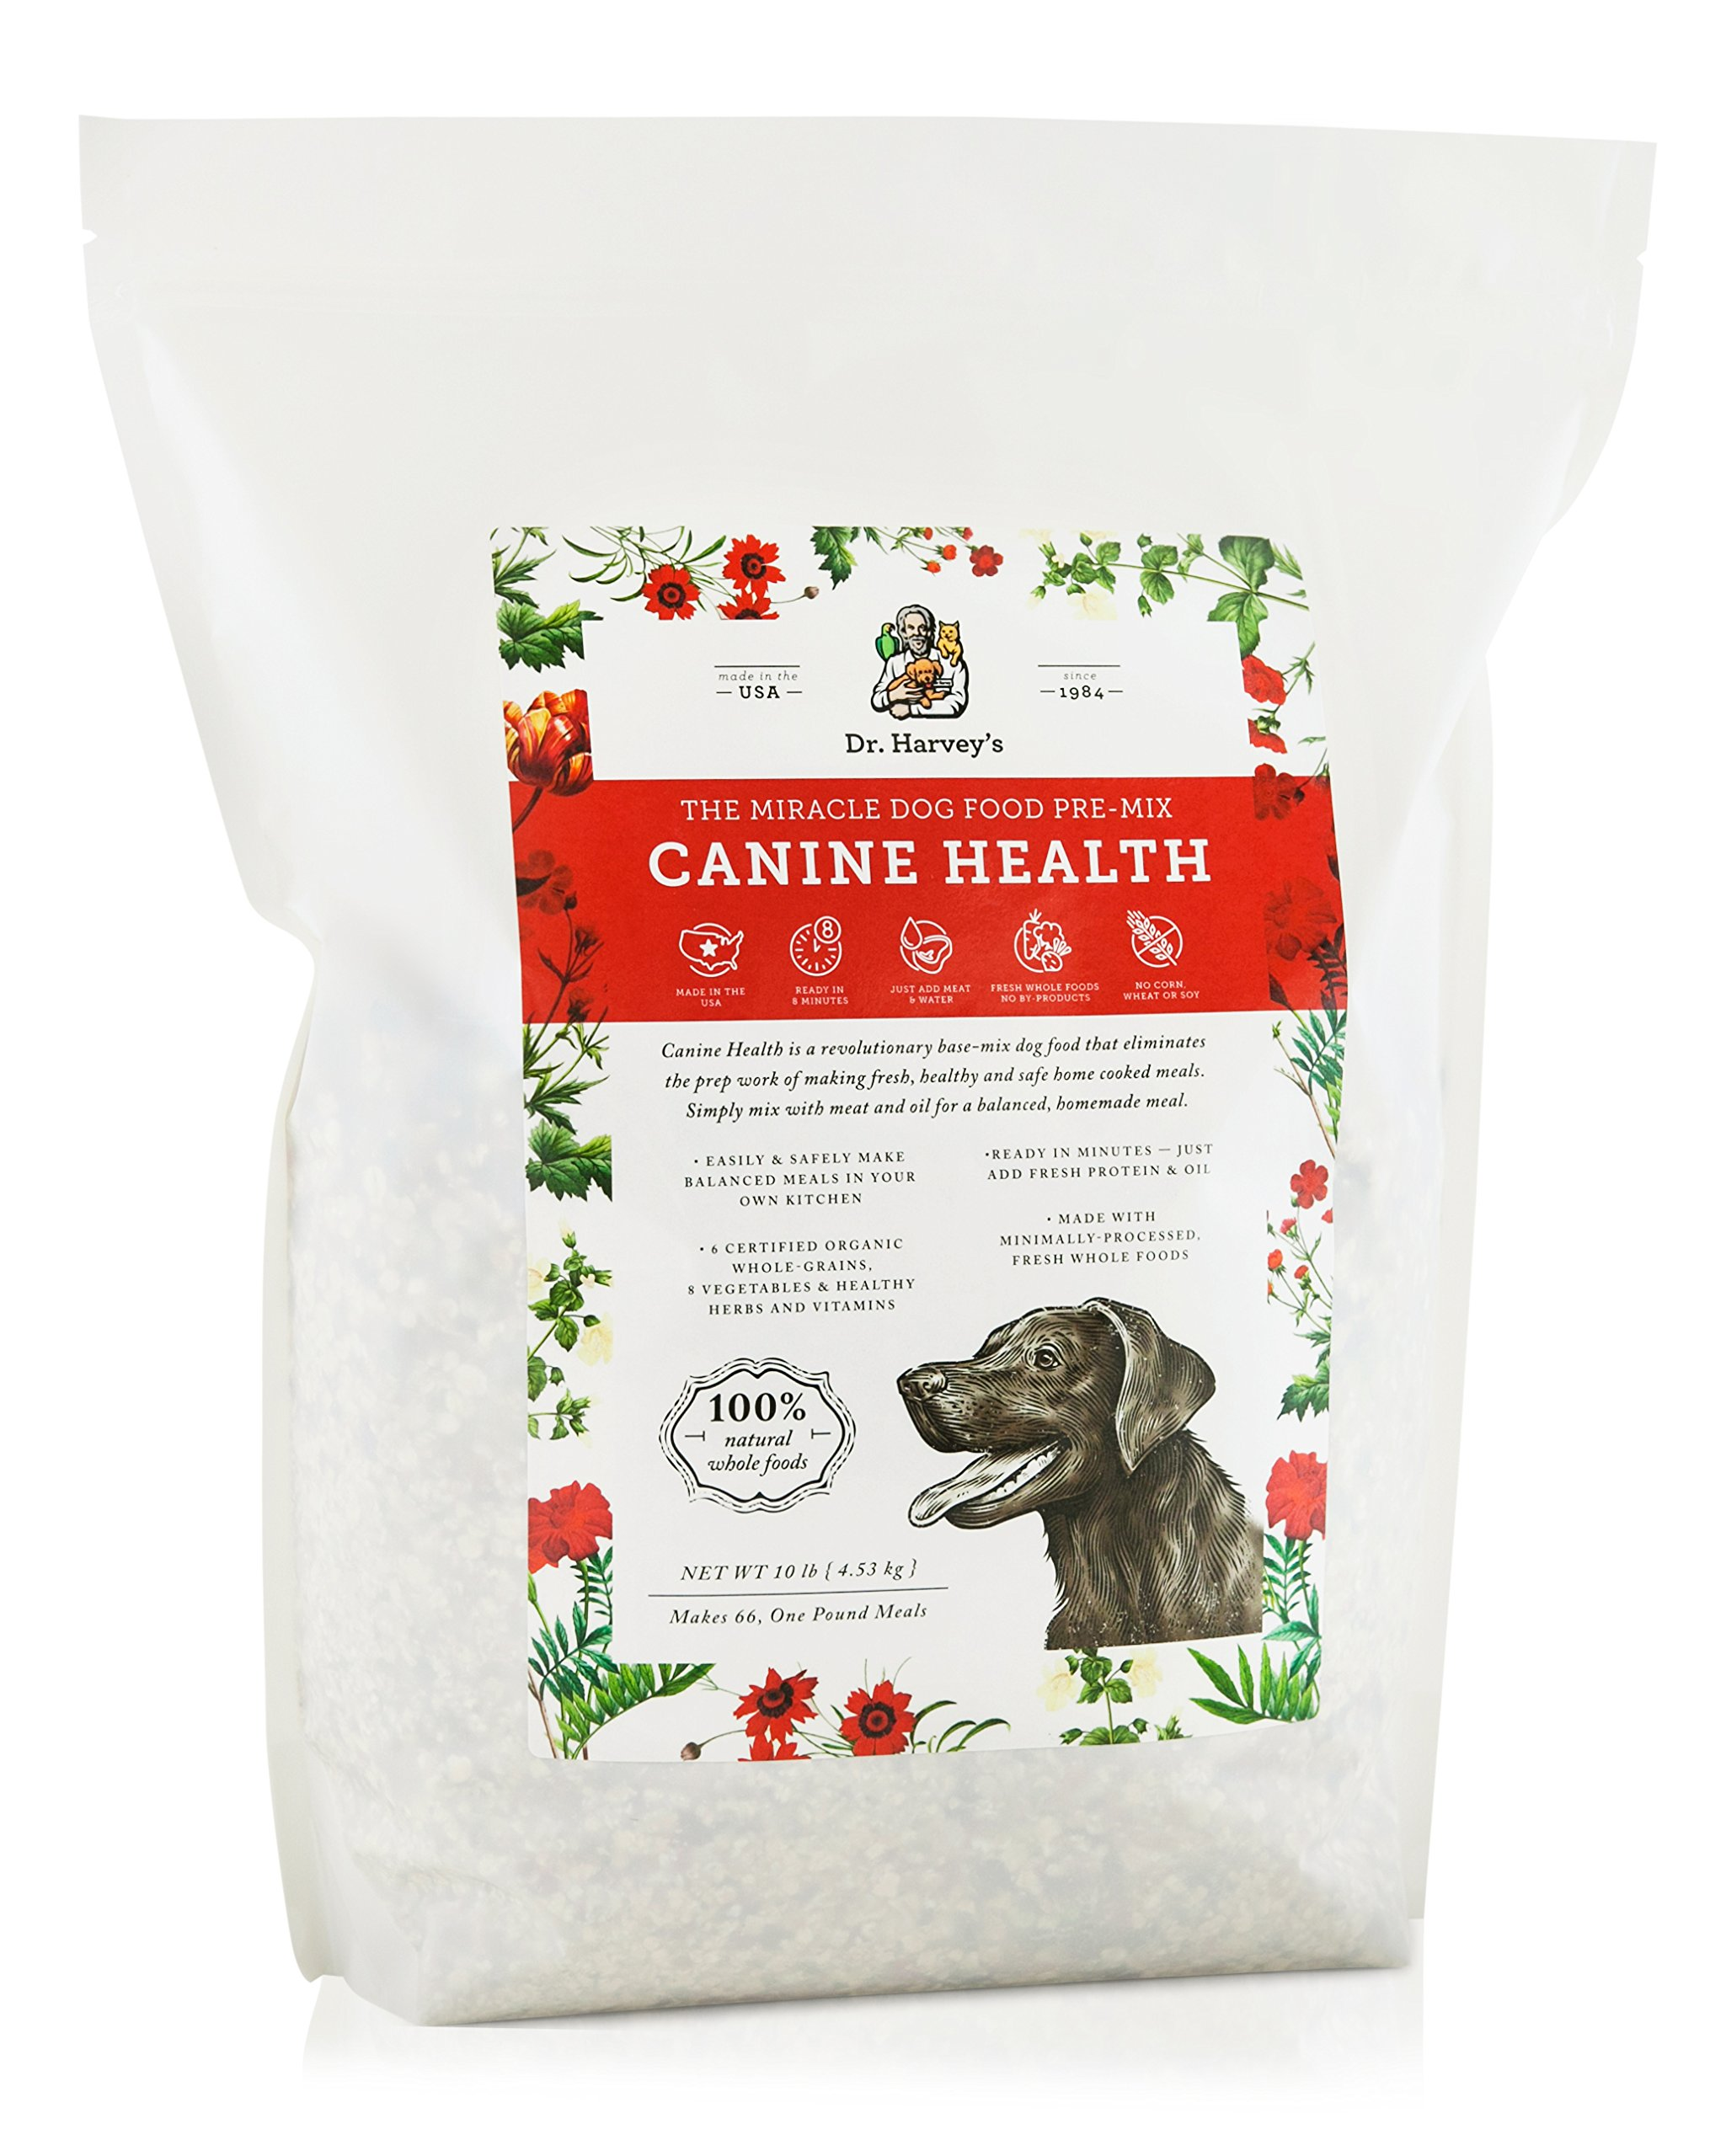 Dr. Harvey's Canine Health Miracle Dog Food, Human Grade Dehydrated Base Mix for Dogs with Organic Whole Grains and Vegetables (10 Pounds) by Dr. Harvey's